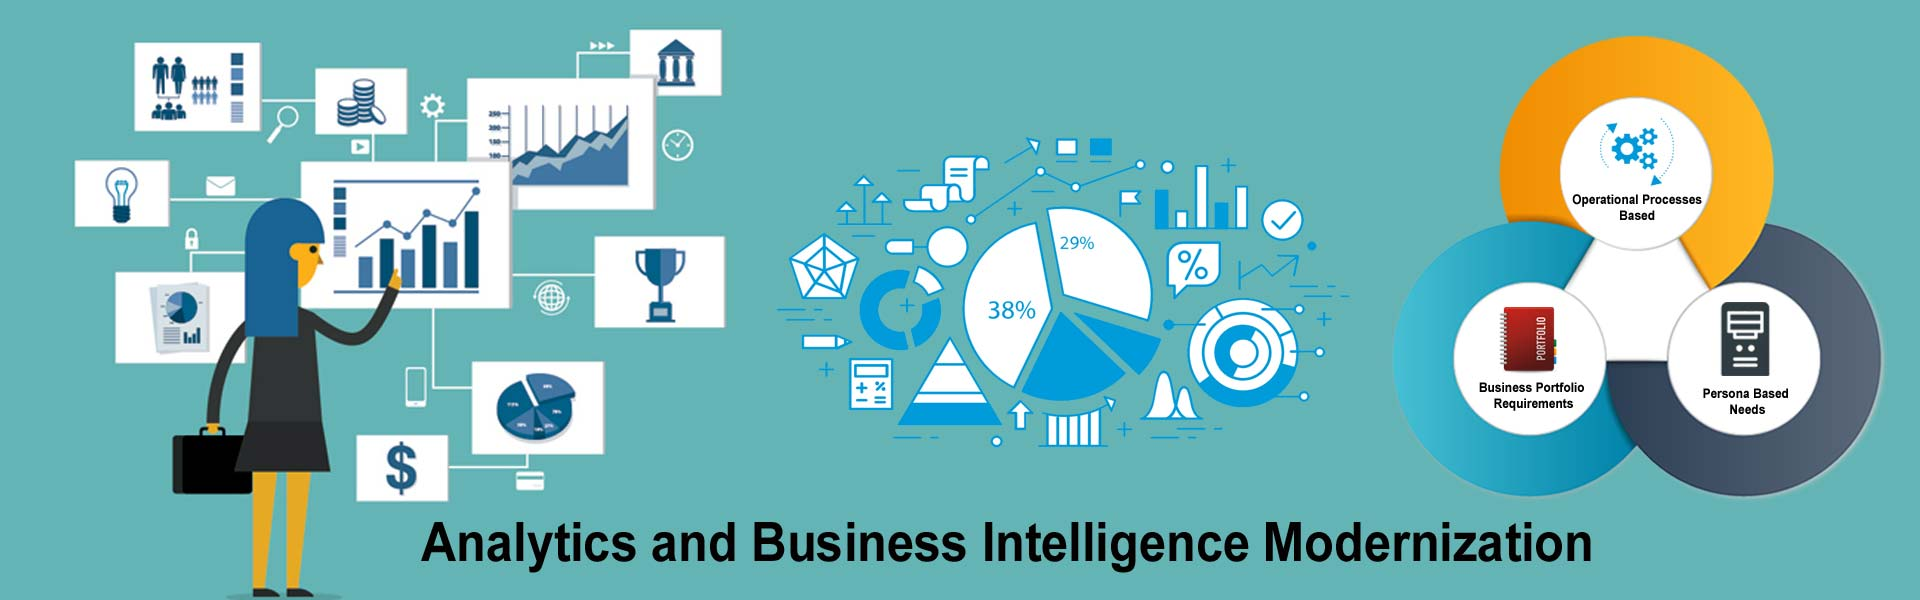 Analytics and Business Intelligence Modernization